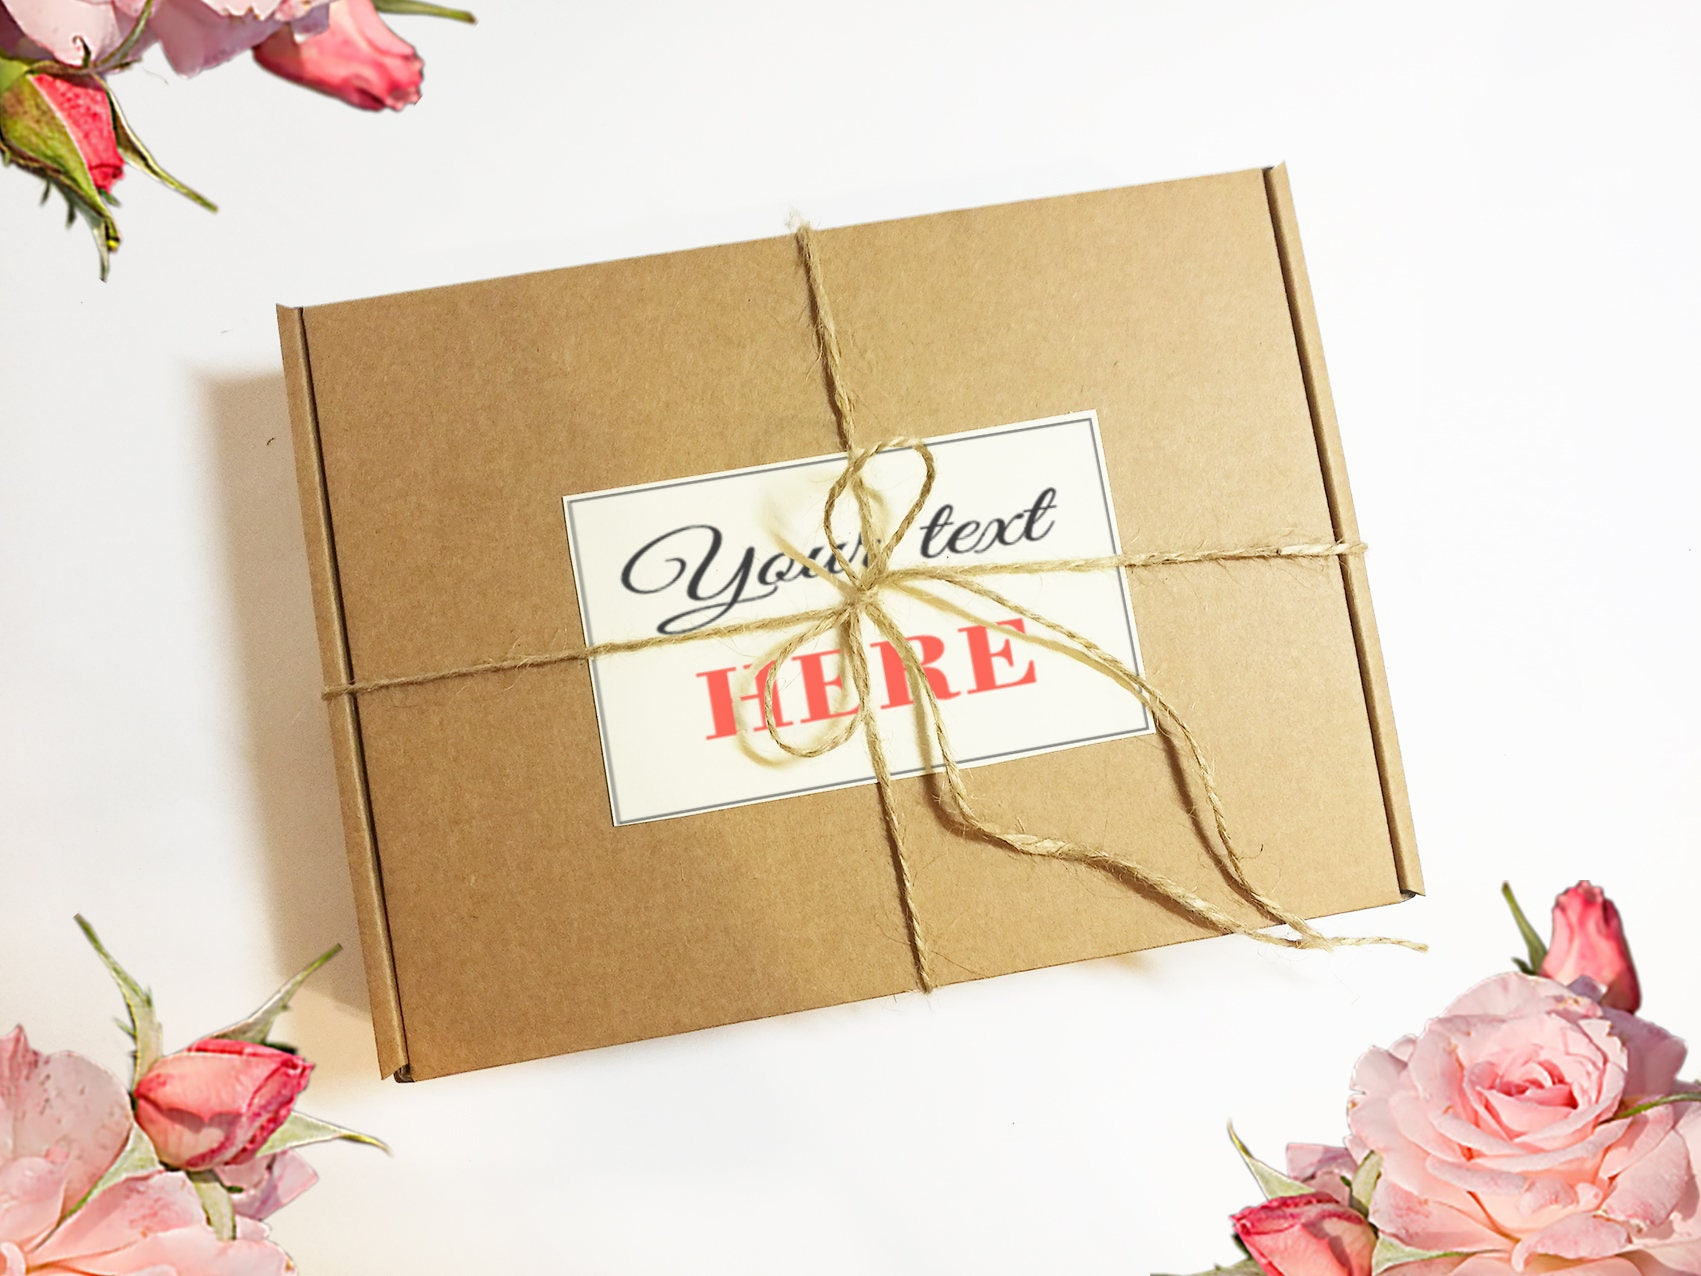 custom cardboard gift box personalized bridesmaids gift boxes. Black Bedroom Furniture Sets. Home Design Ideas